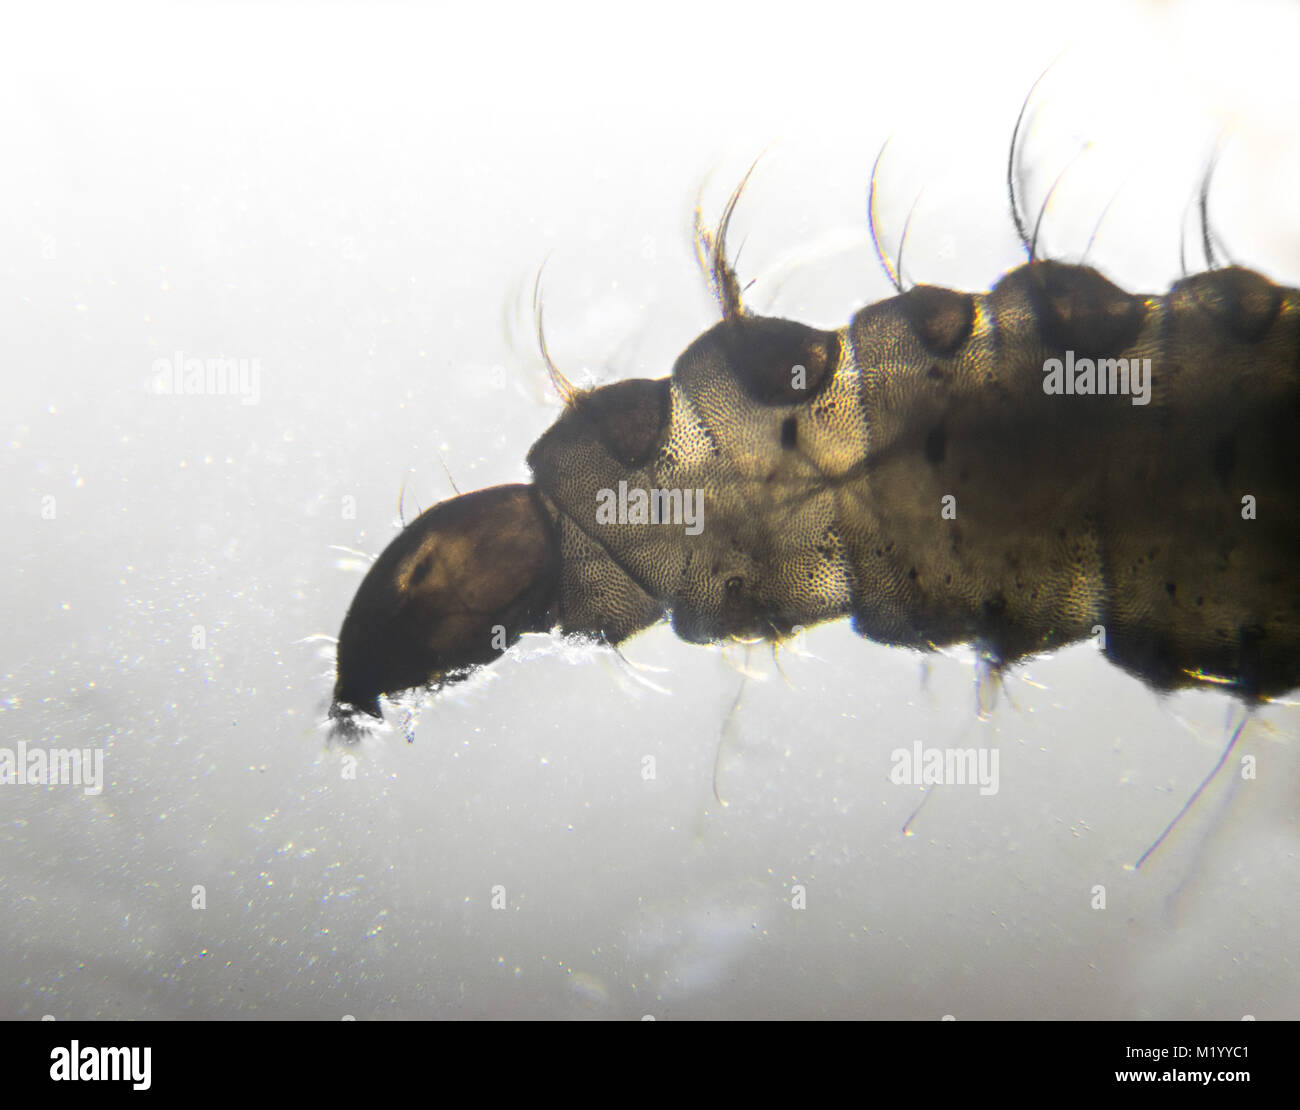 Clogmia albipunctata (drain fly) larvae magnified through a microscope 40 times - Stock Image